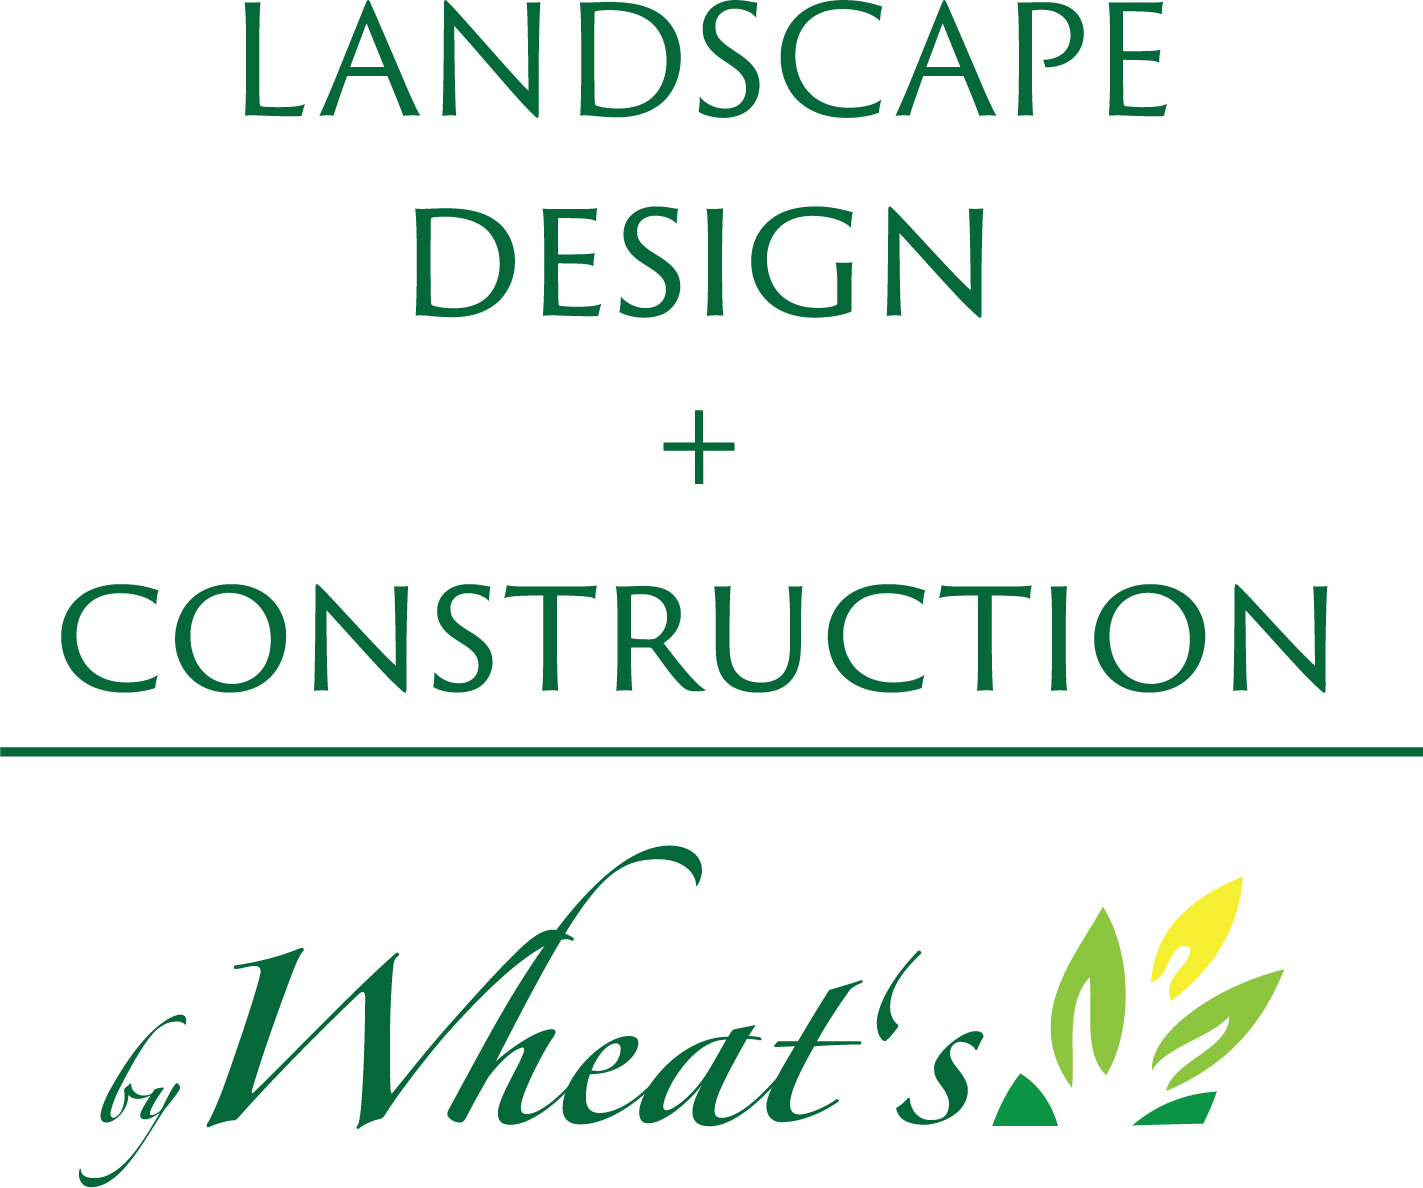 Irrigation drawing landscape architecture construction. Design in northern va